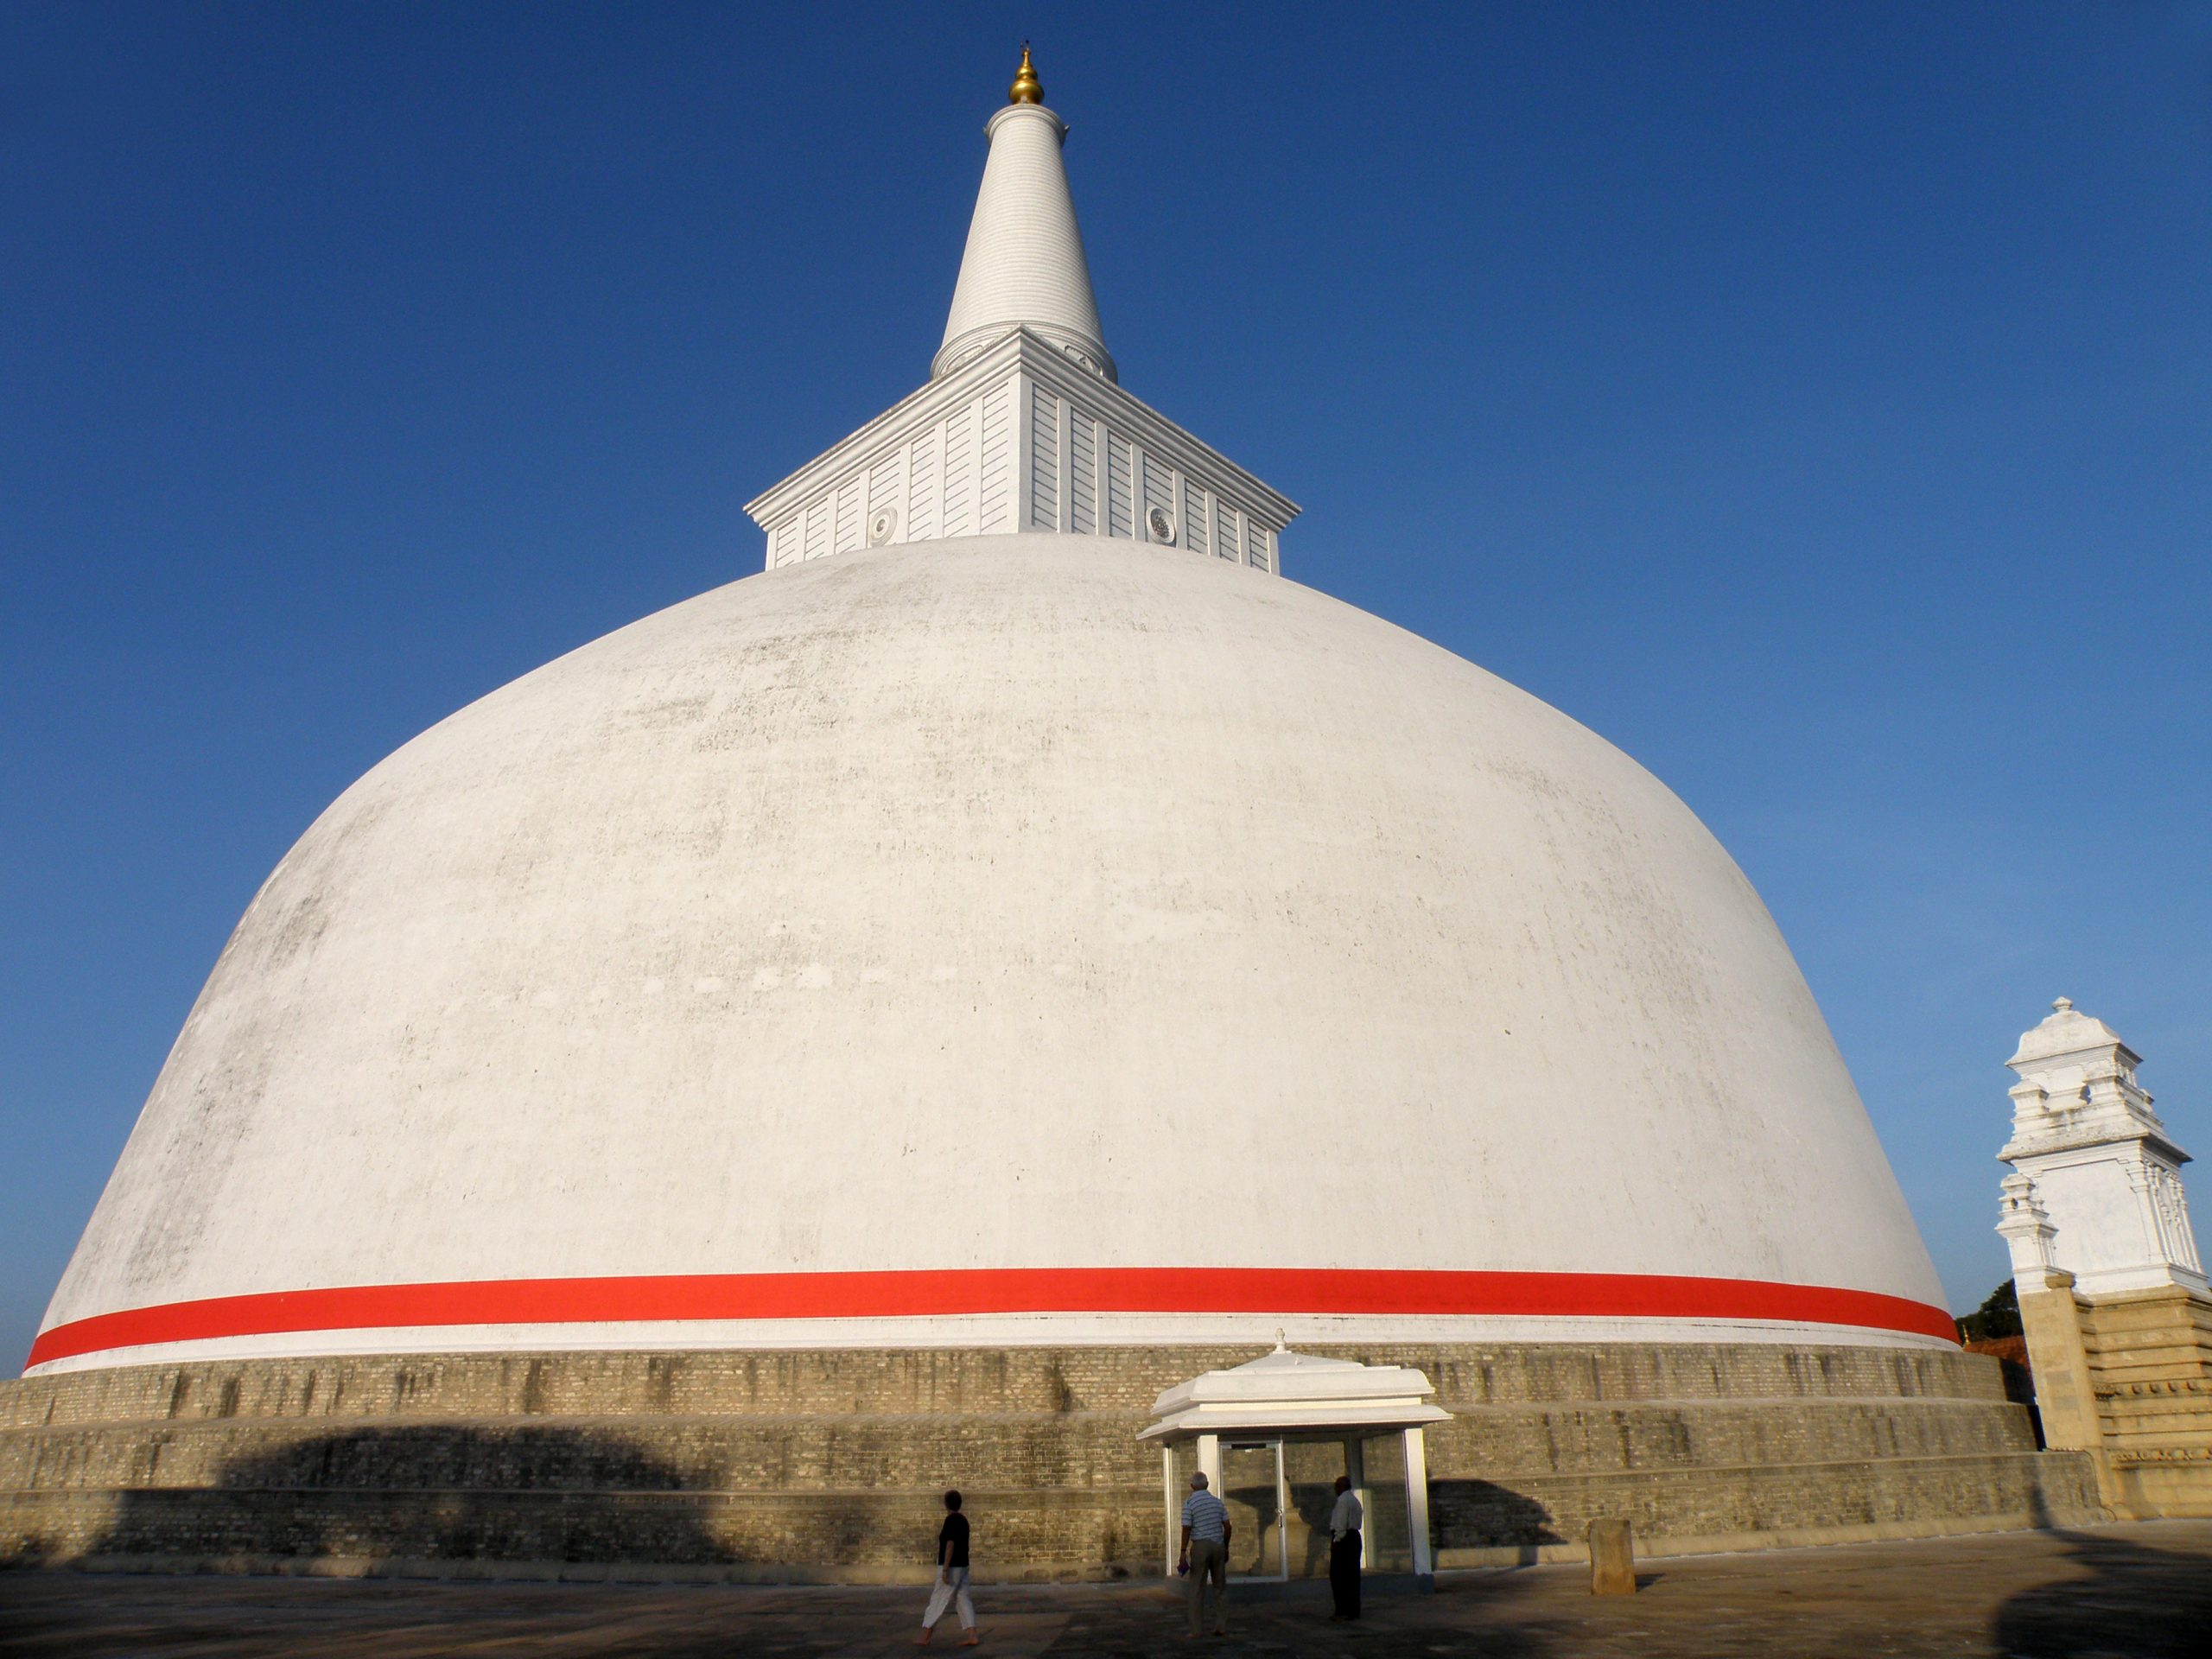 Anuradhapura Best Place to Visit in Sri Lanka